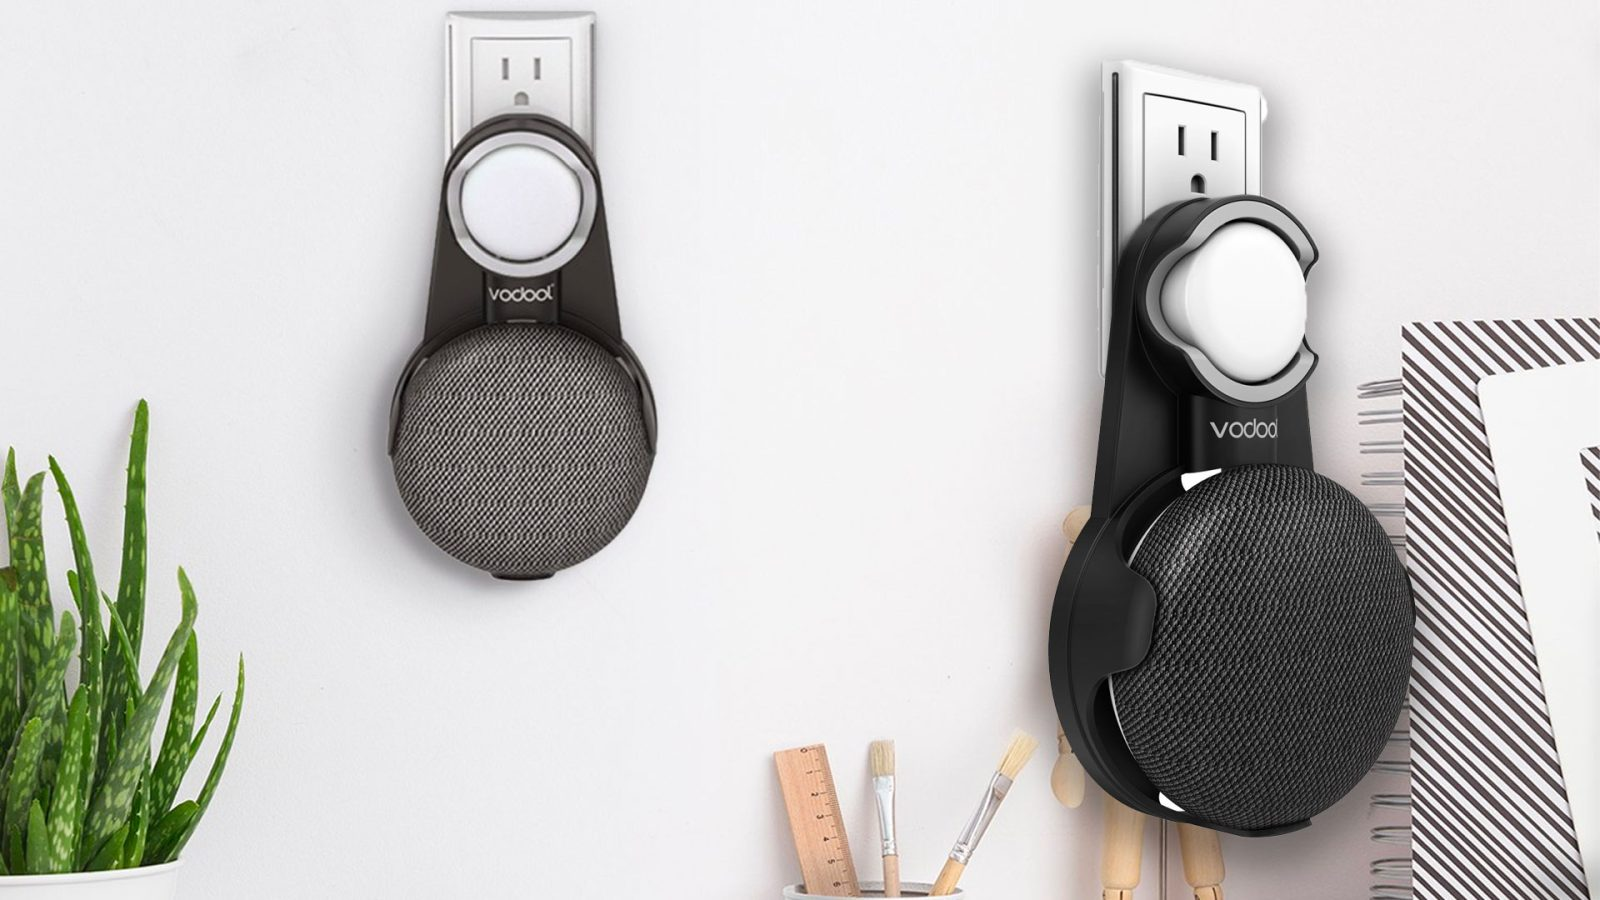 Your Google Home Mini deserves a new home with this $5 wall mount